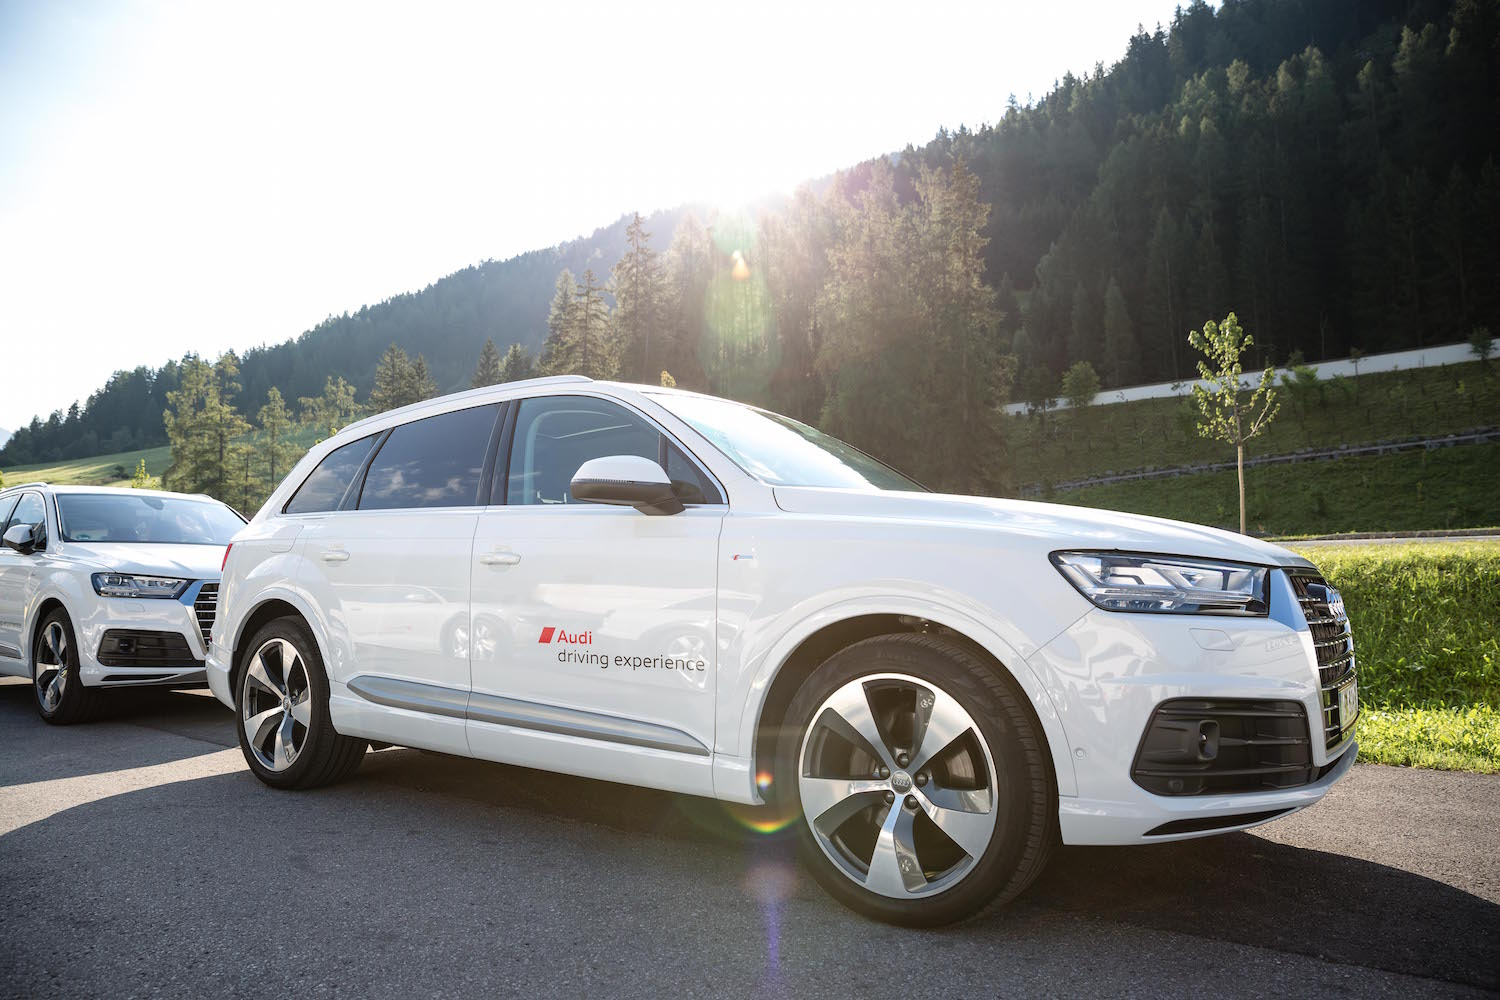 _audi_offroad_experience_web (6 von 274)